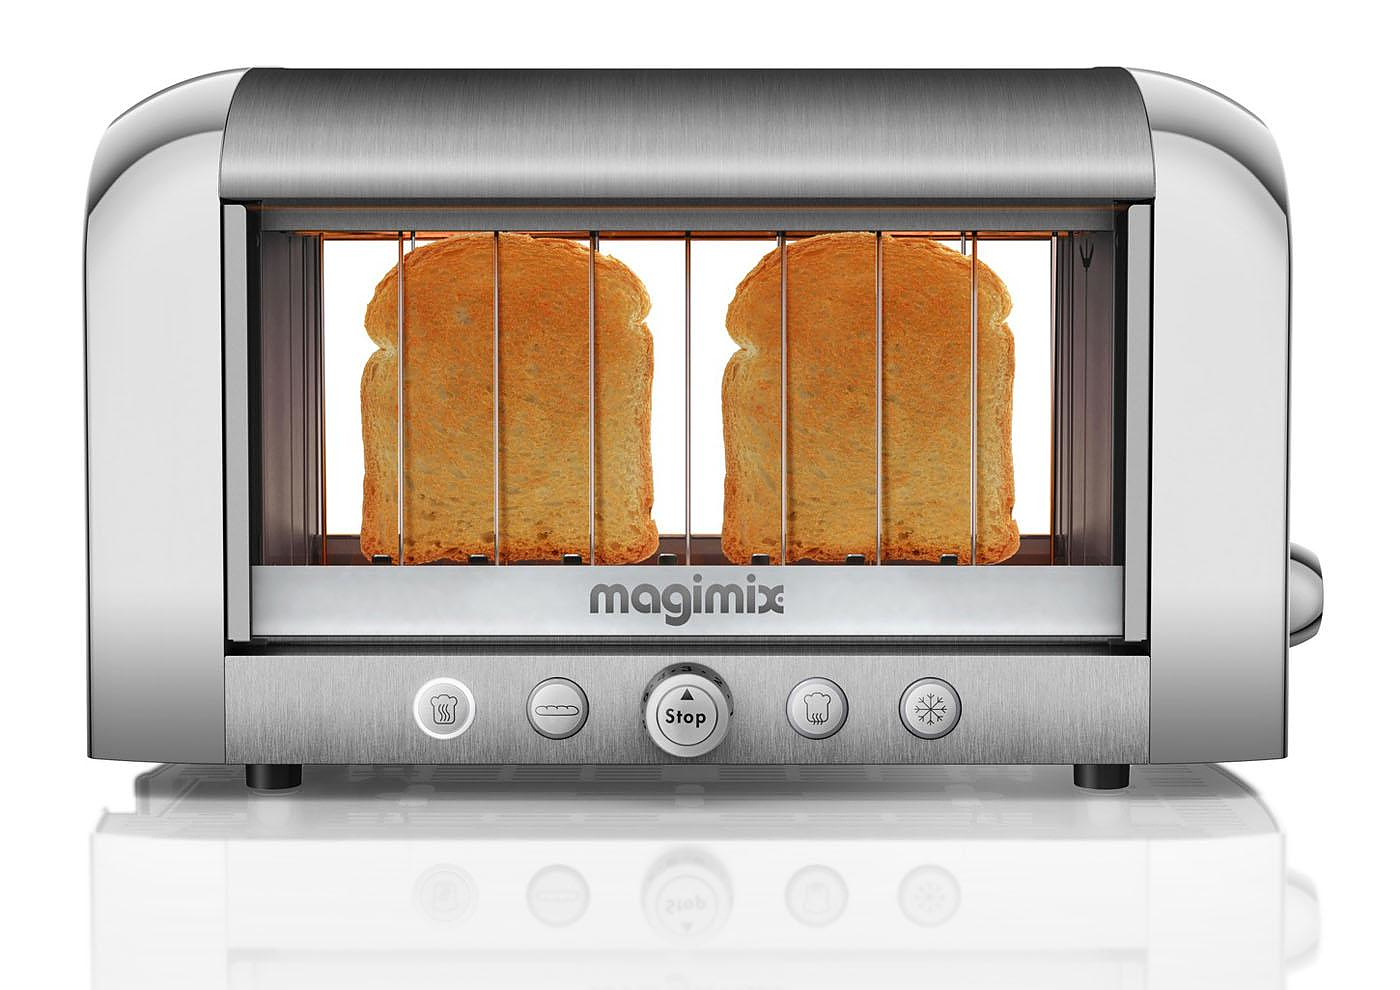 Magimix Vision Toaster World S First See Through Toaster